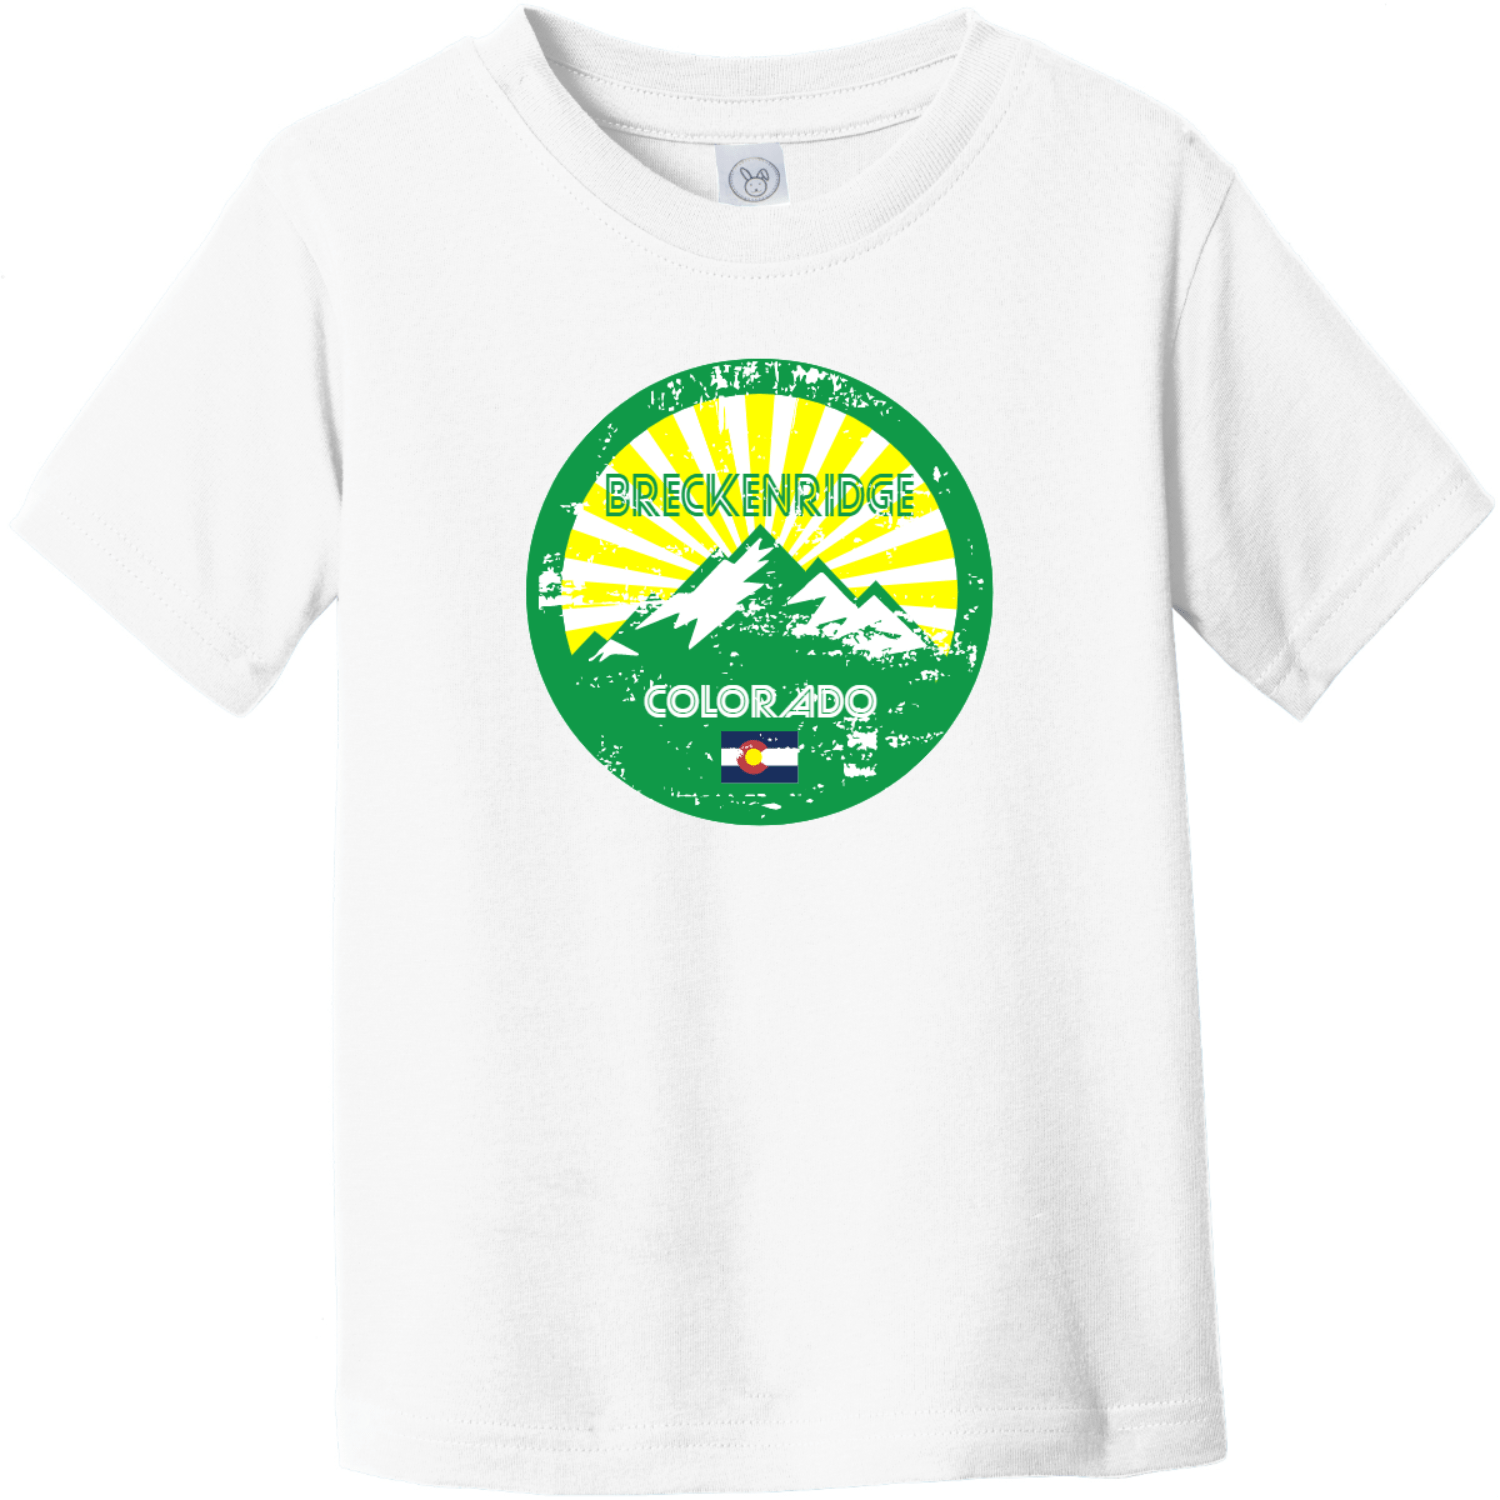 Breckenridge Colorado Mountain Flag Toddler T-Shirt White Rabbit Skins Toddler Fine Jersey Tee RS3321